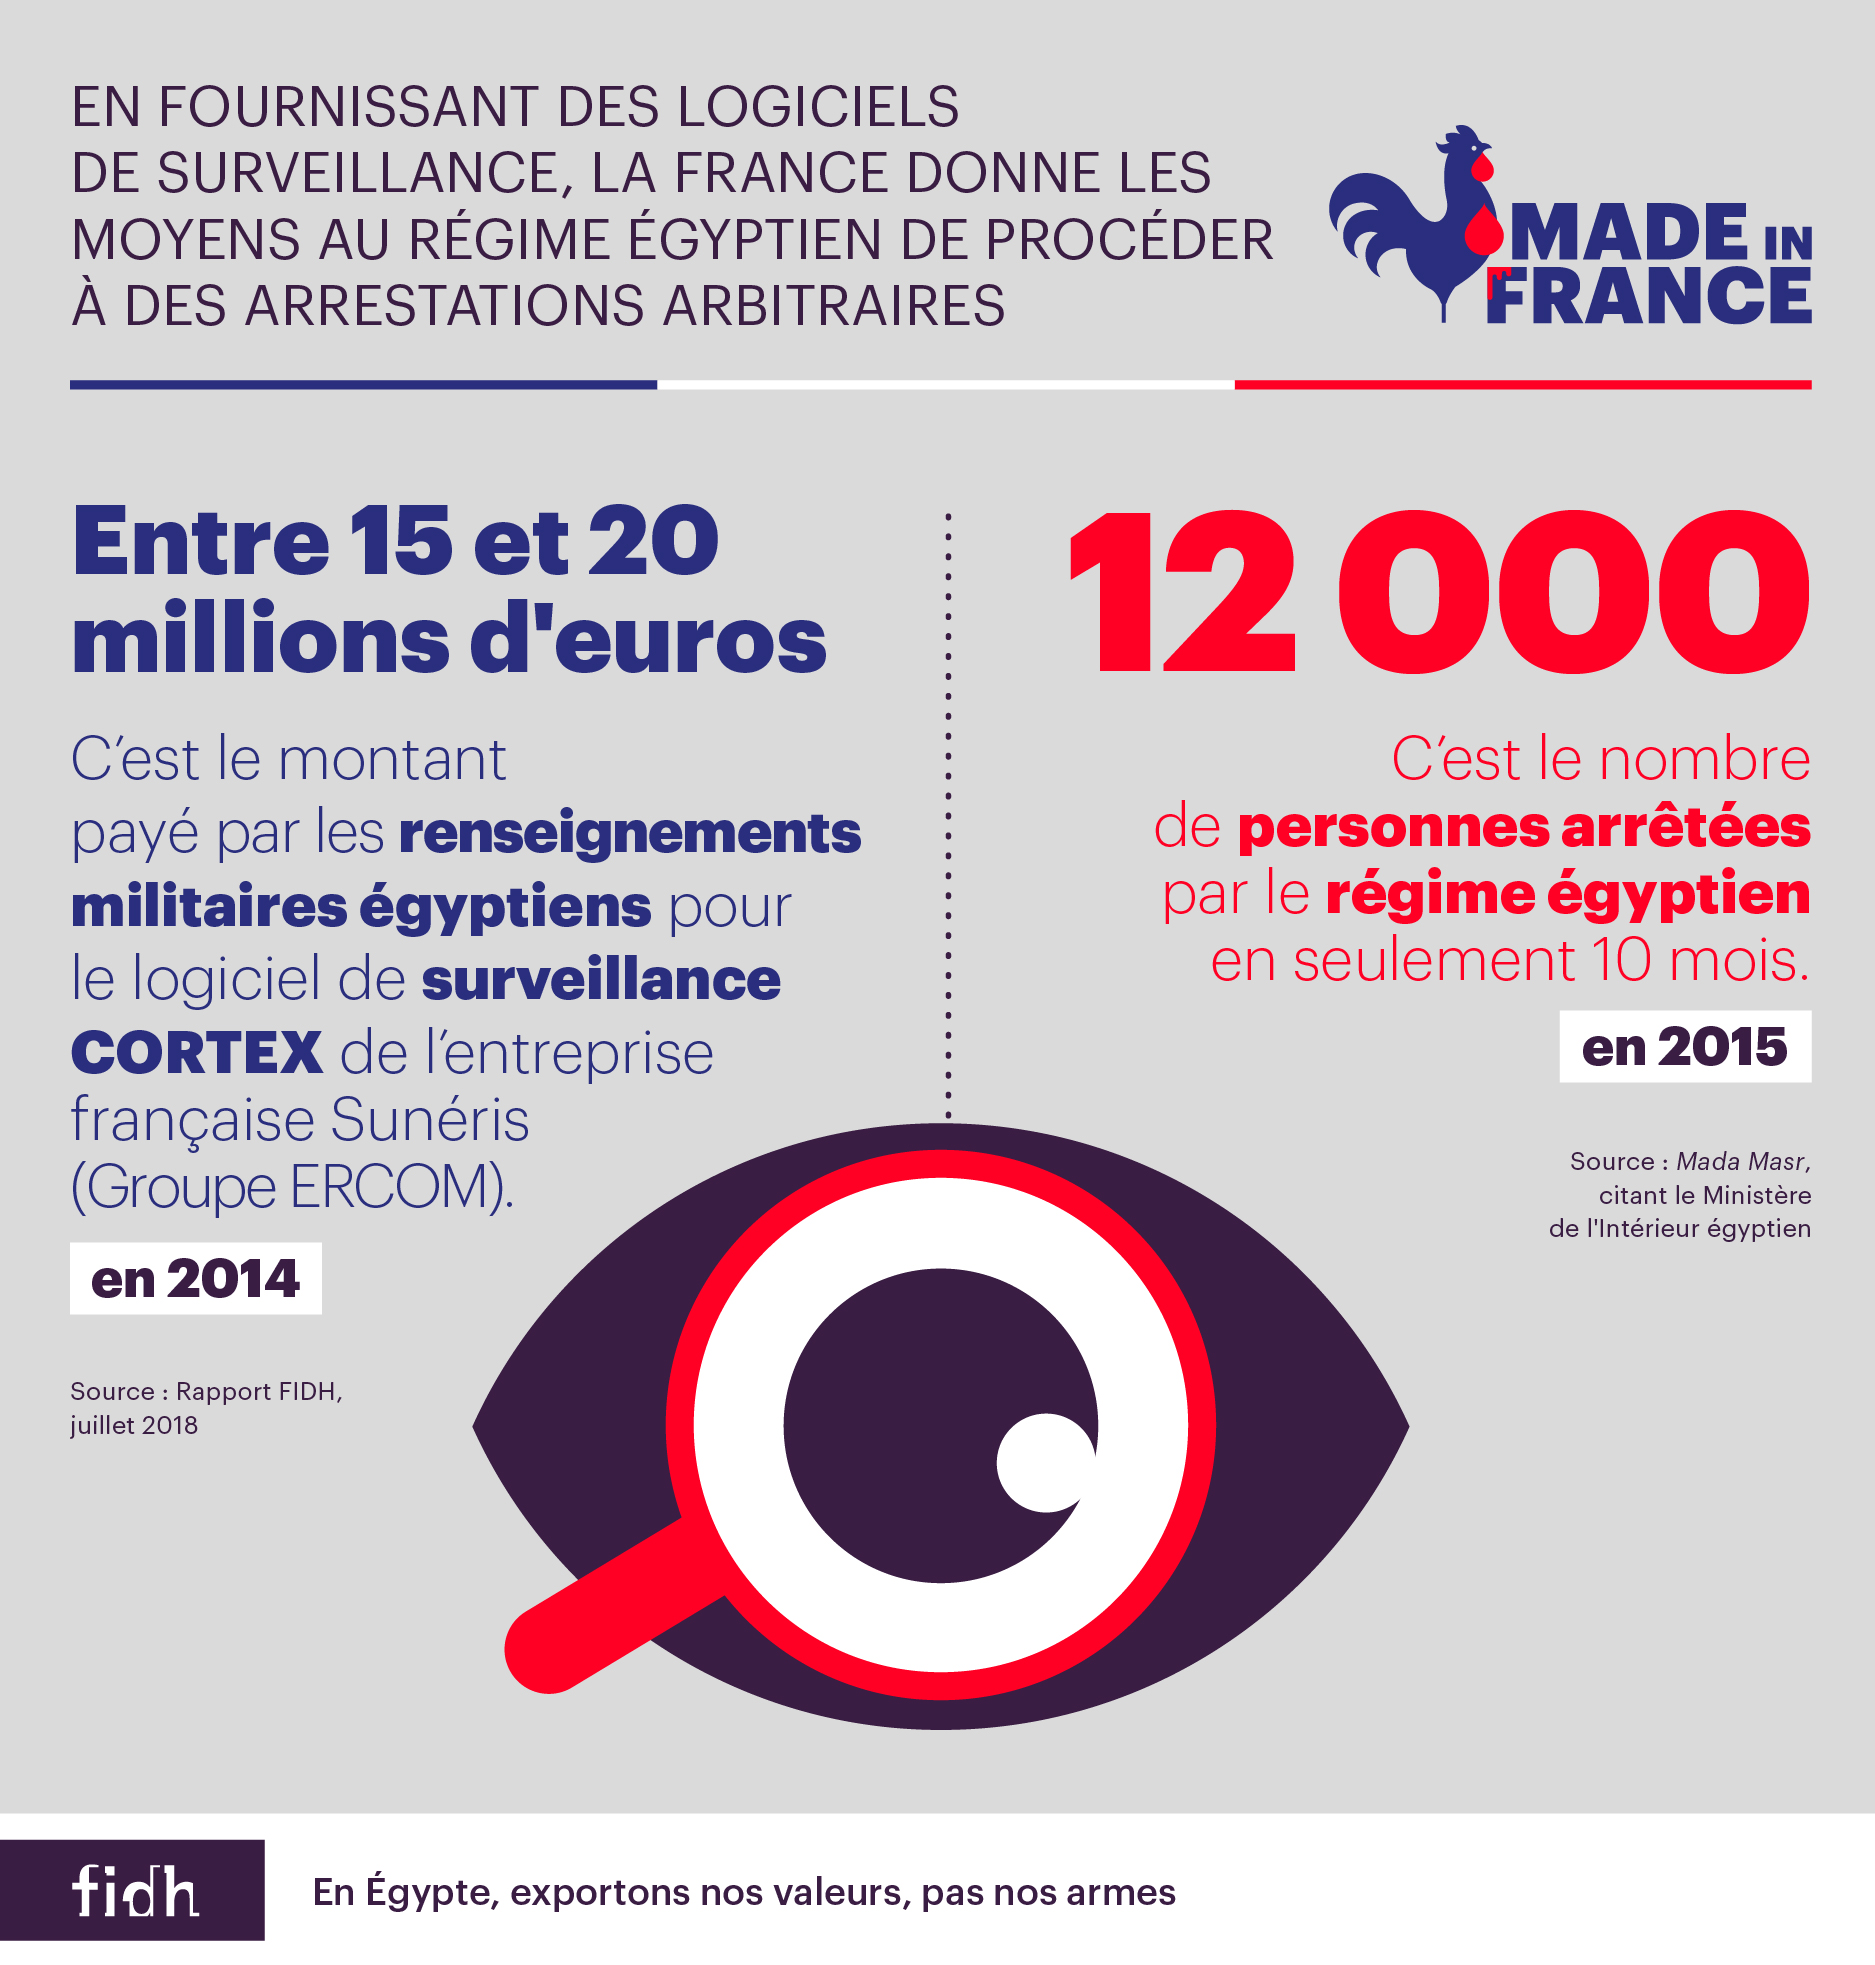 FIDH_MADEINFRANCE_03